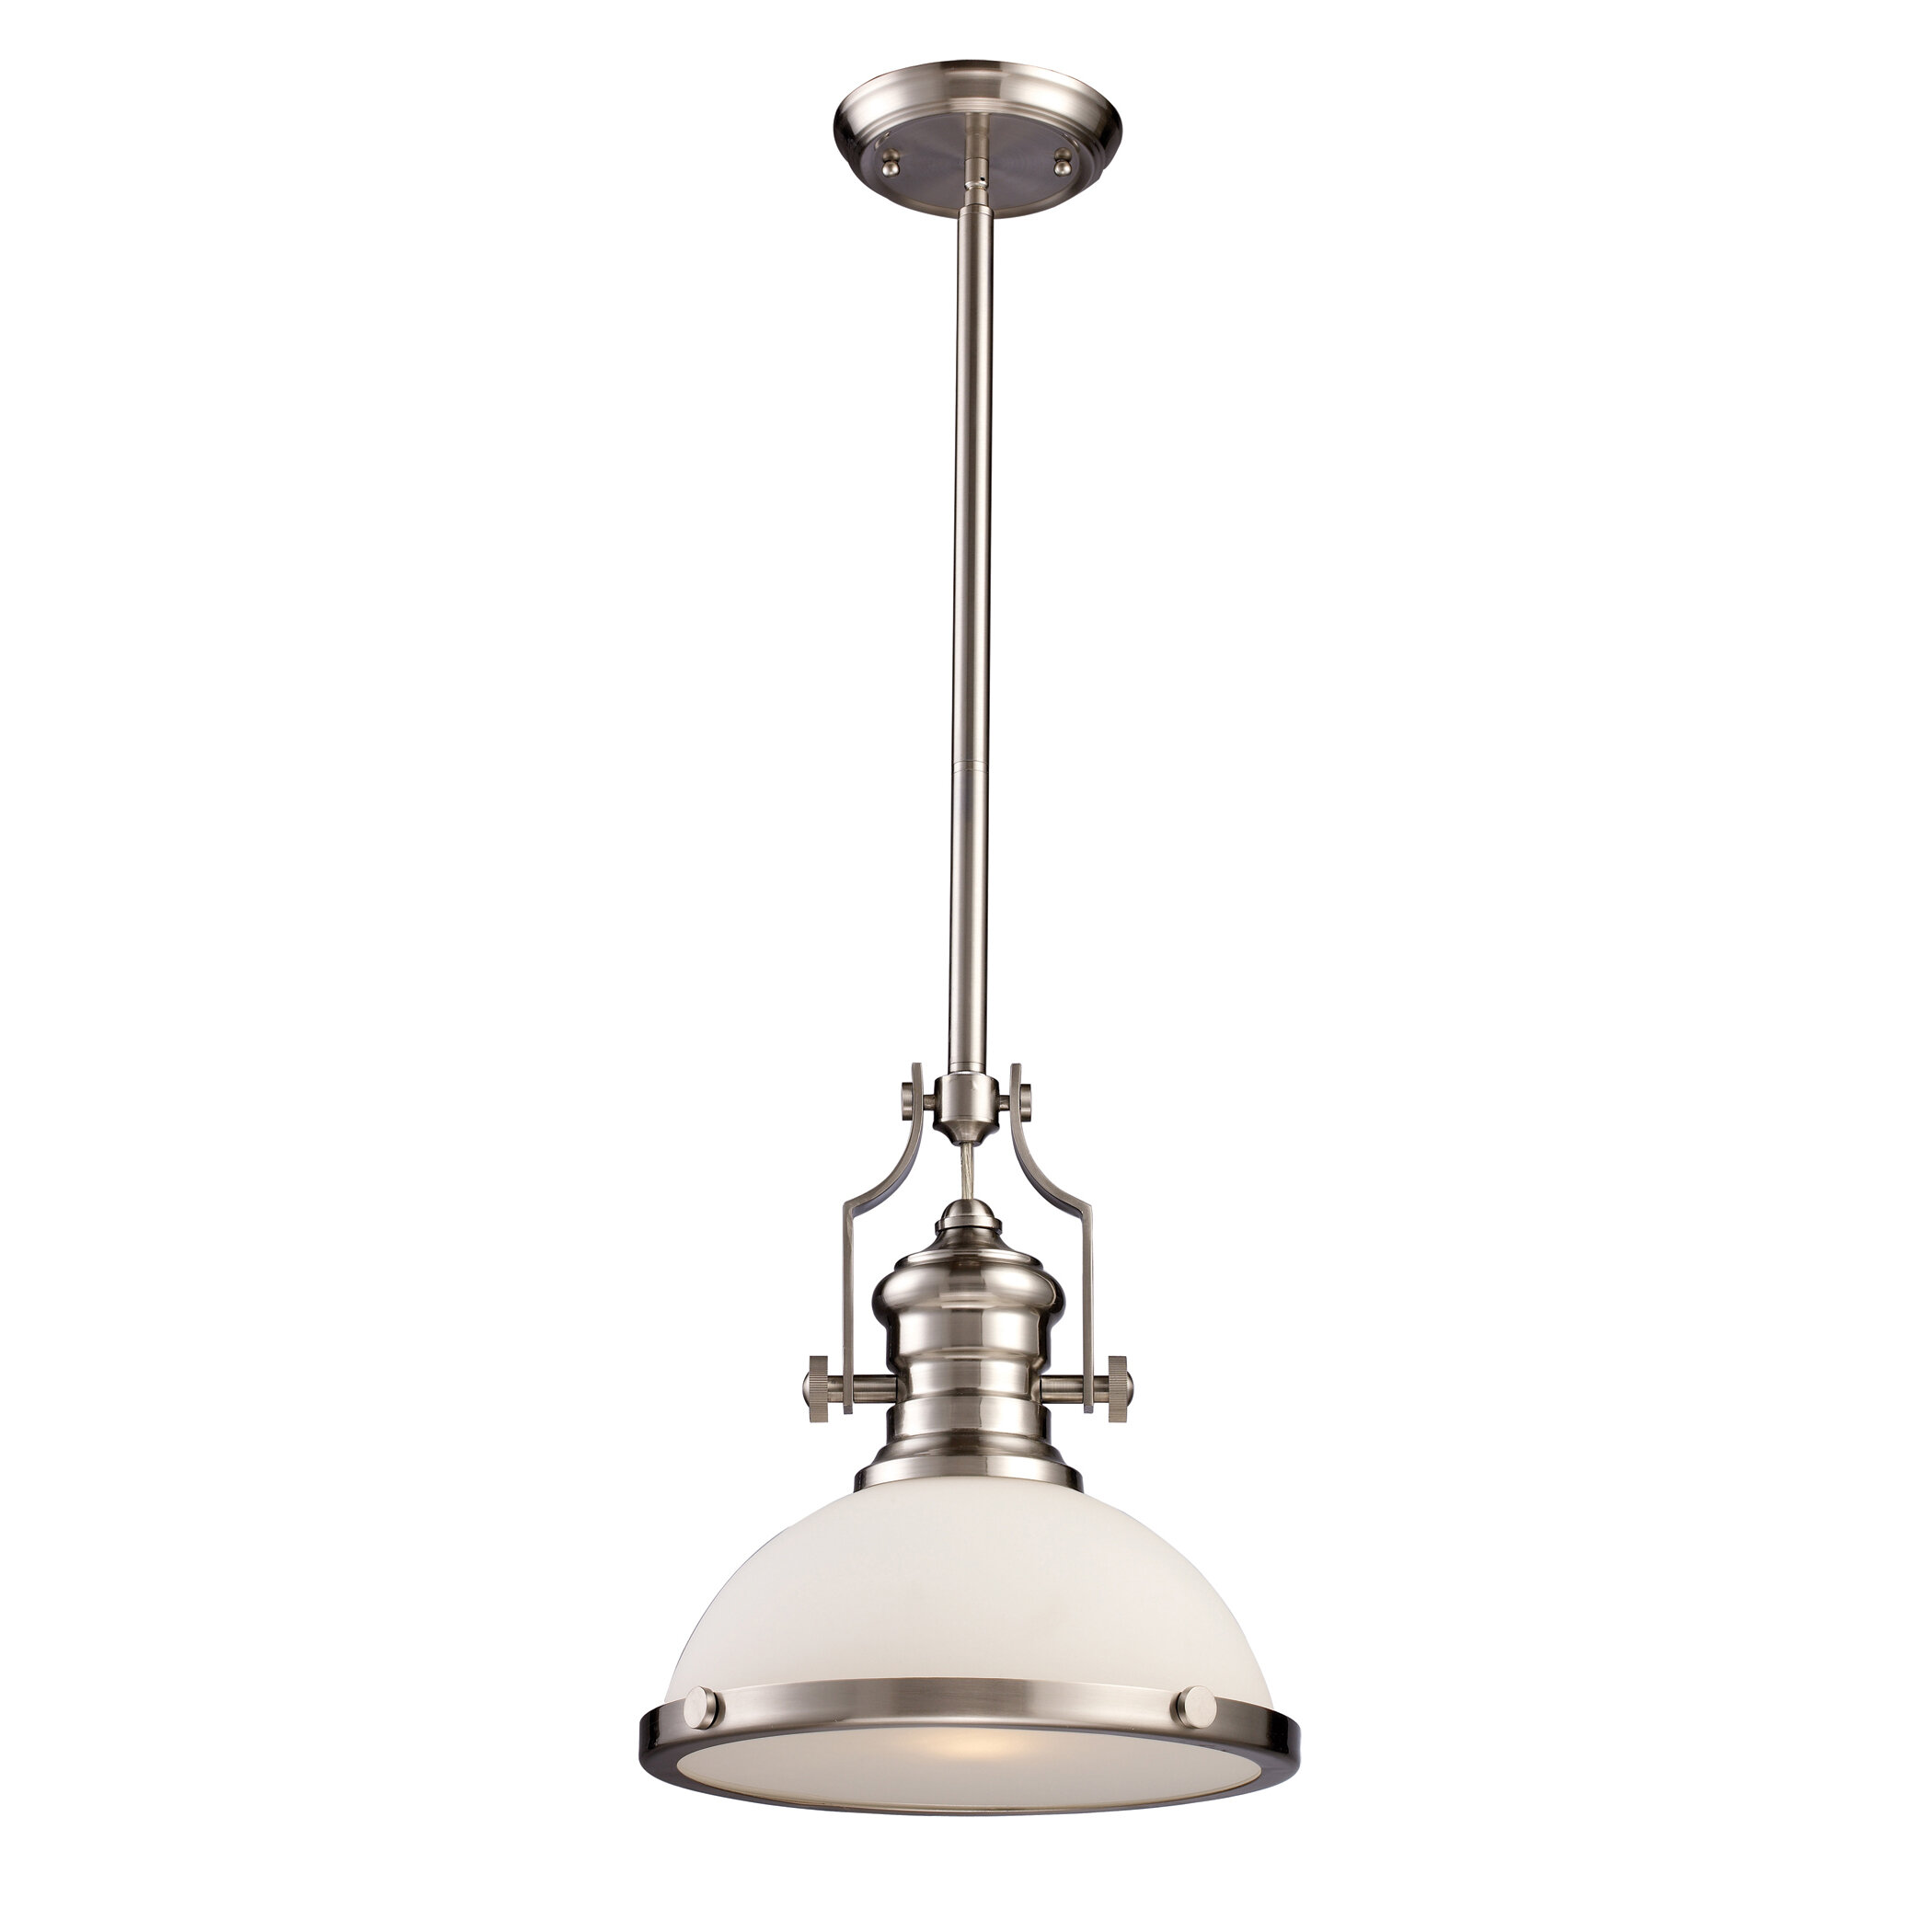 zoom sale hover productdetail htm one brass on light to pendant uptown first natural